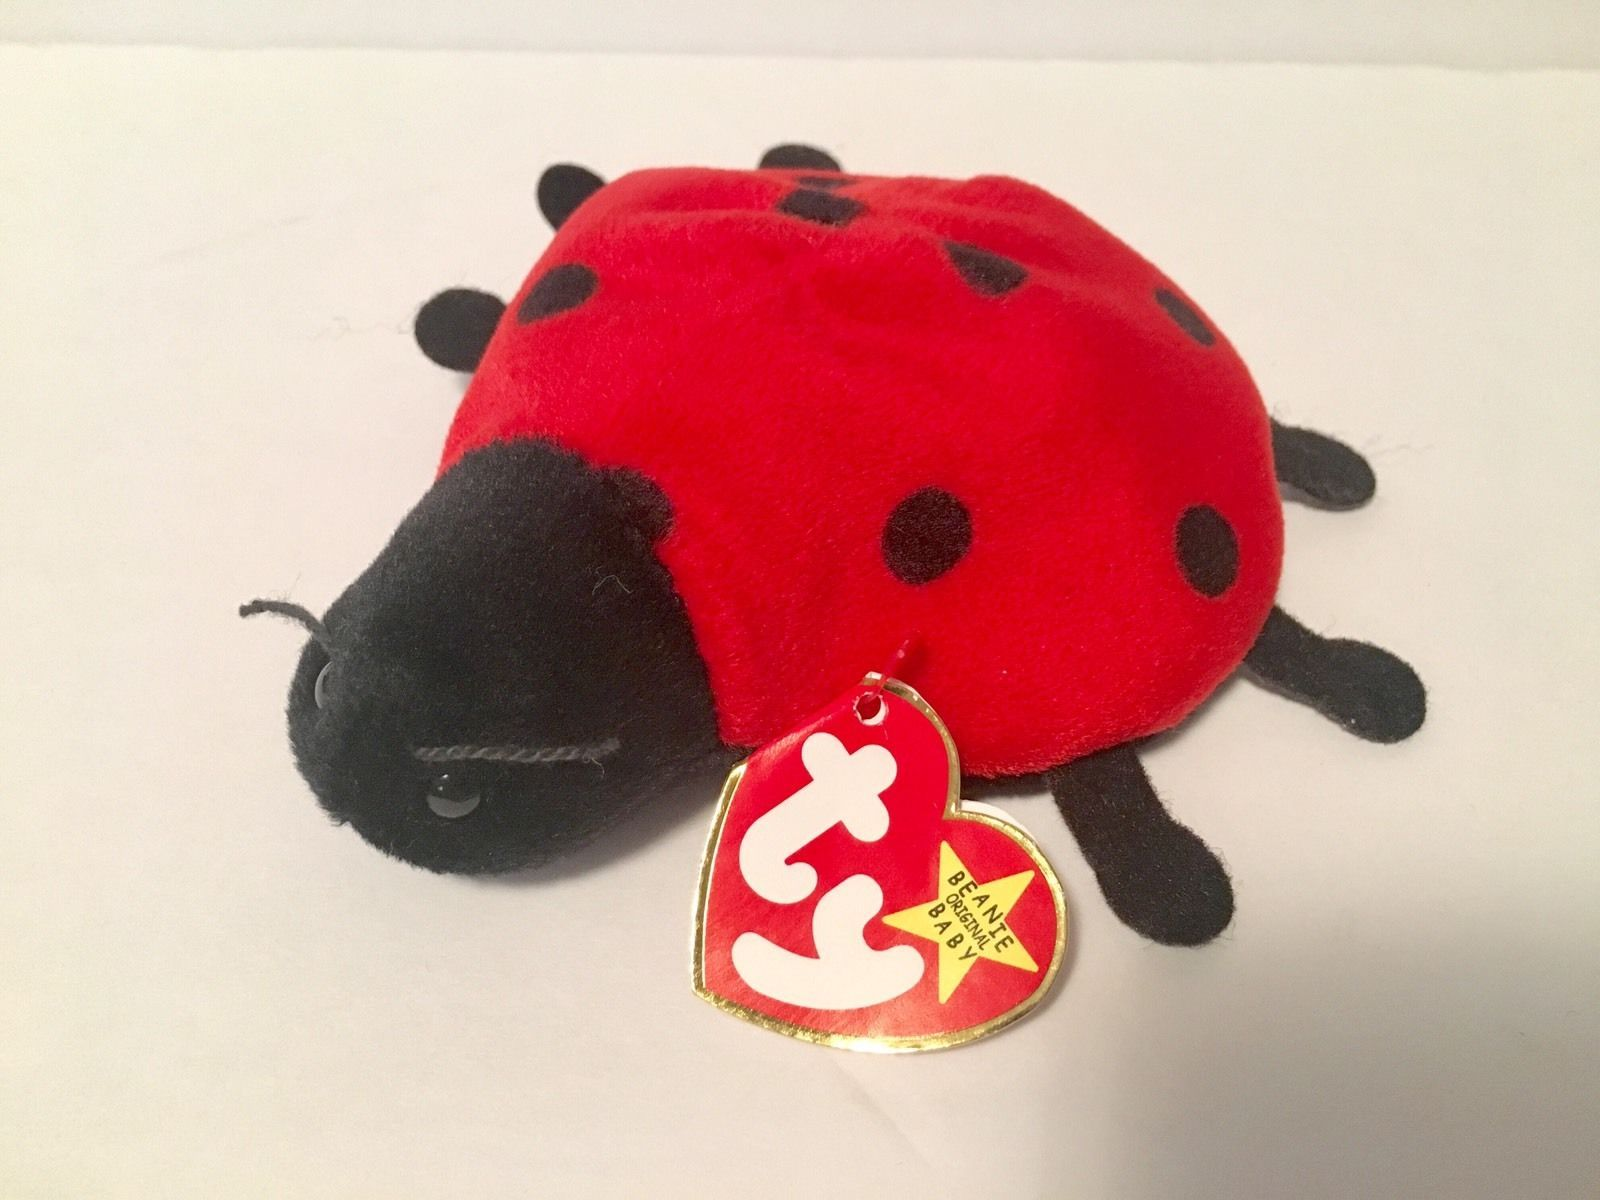 Ty Beanie Babies Plush Beanbag Lucky the Ladybug Red with 10 Black Spots